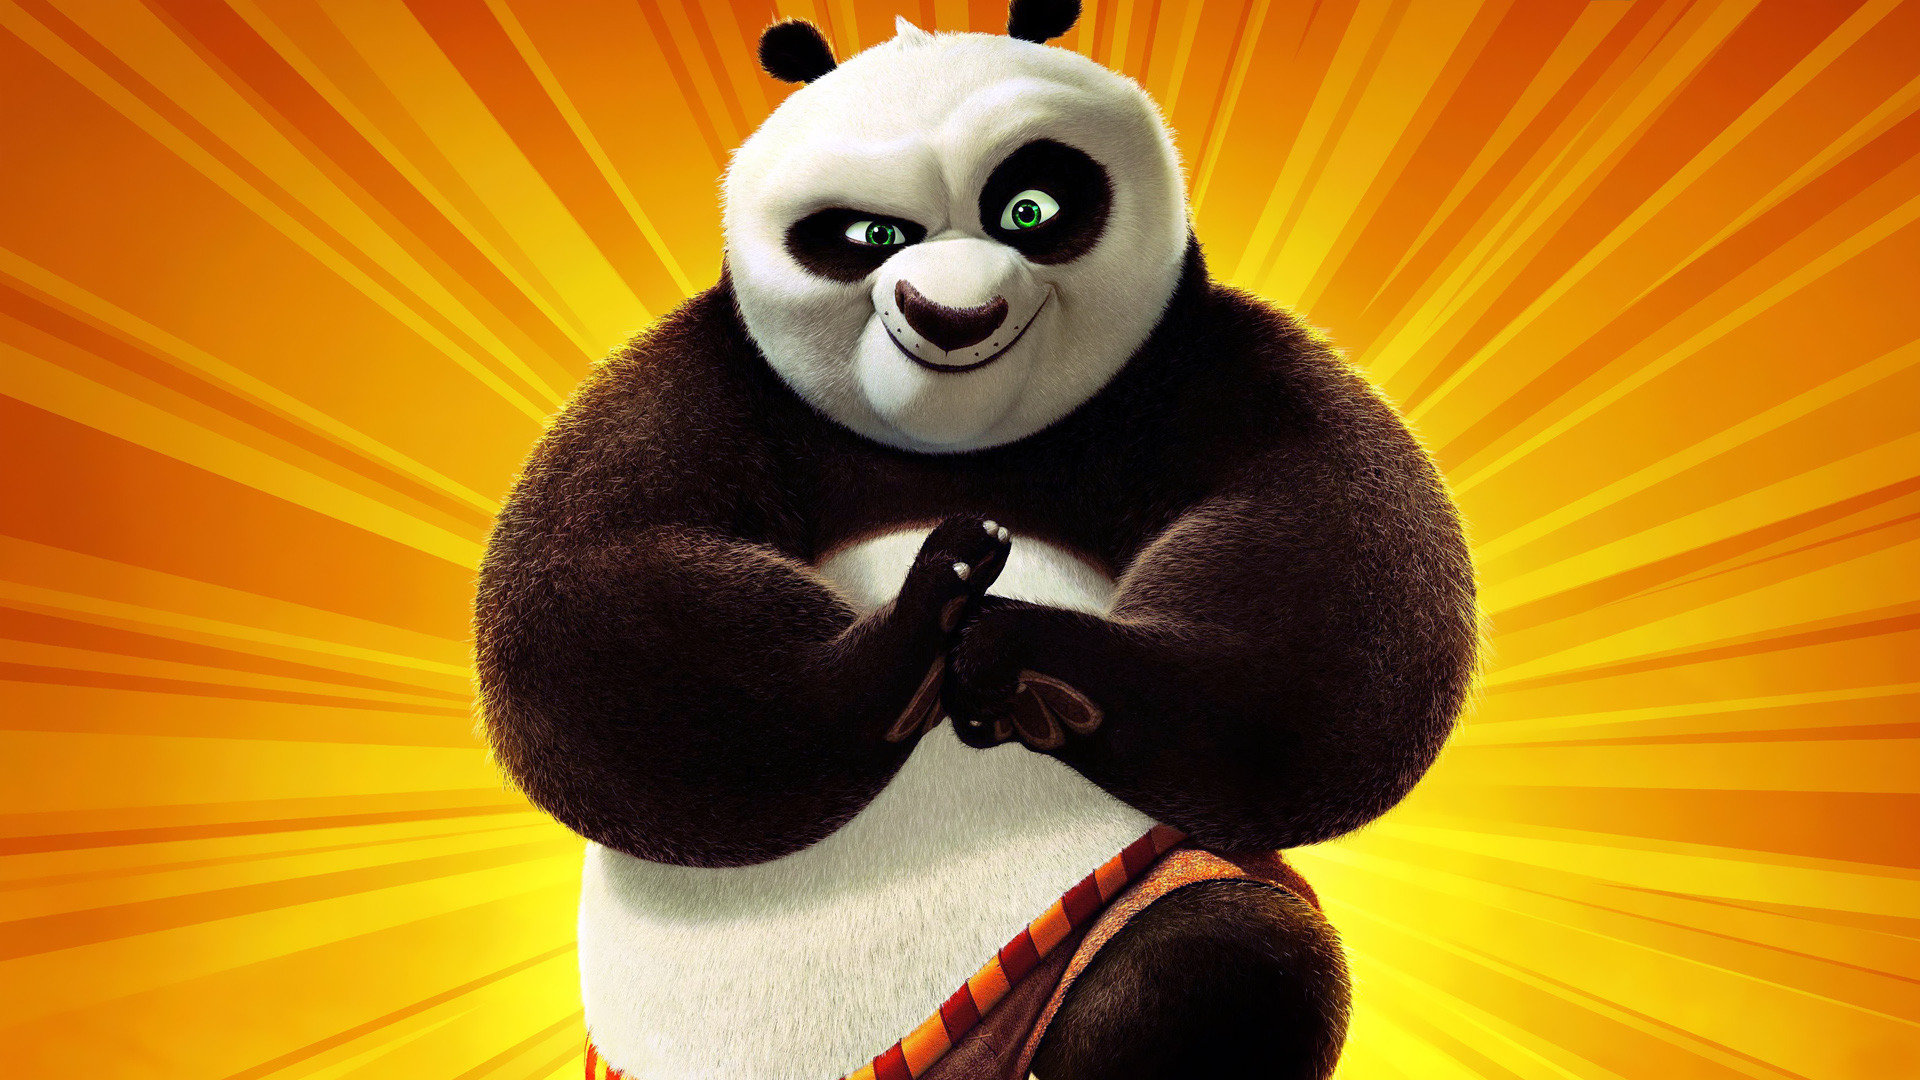 kung fu panda wallpapers 1920x1080 full hd (1080p) desktop backgrounds